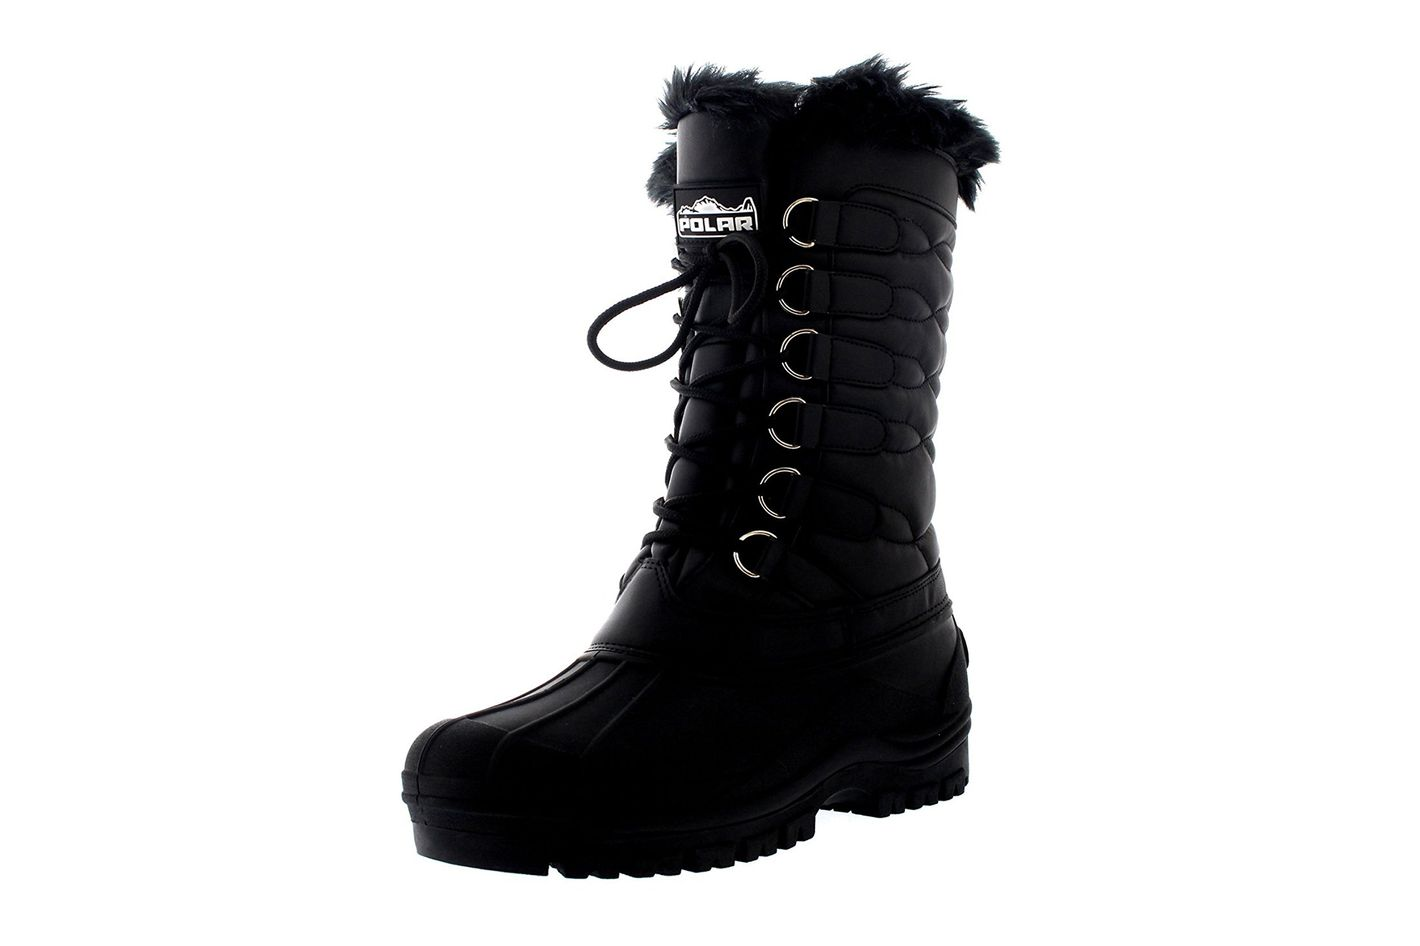 16d482779bda Best quilted waterproof duck boot. Polar Products Women s Nylon Cold  Weather Duck Lace Boot